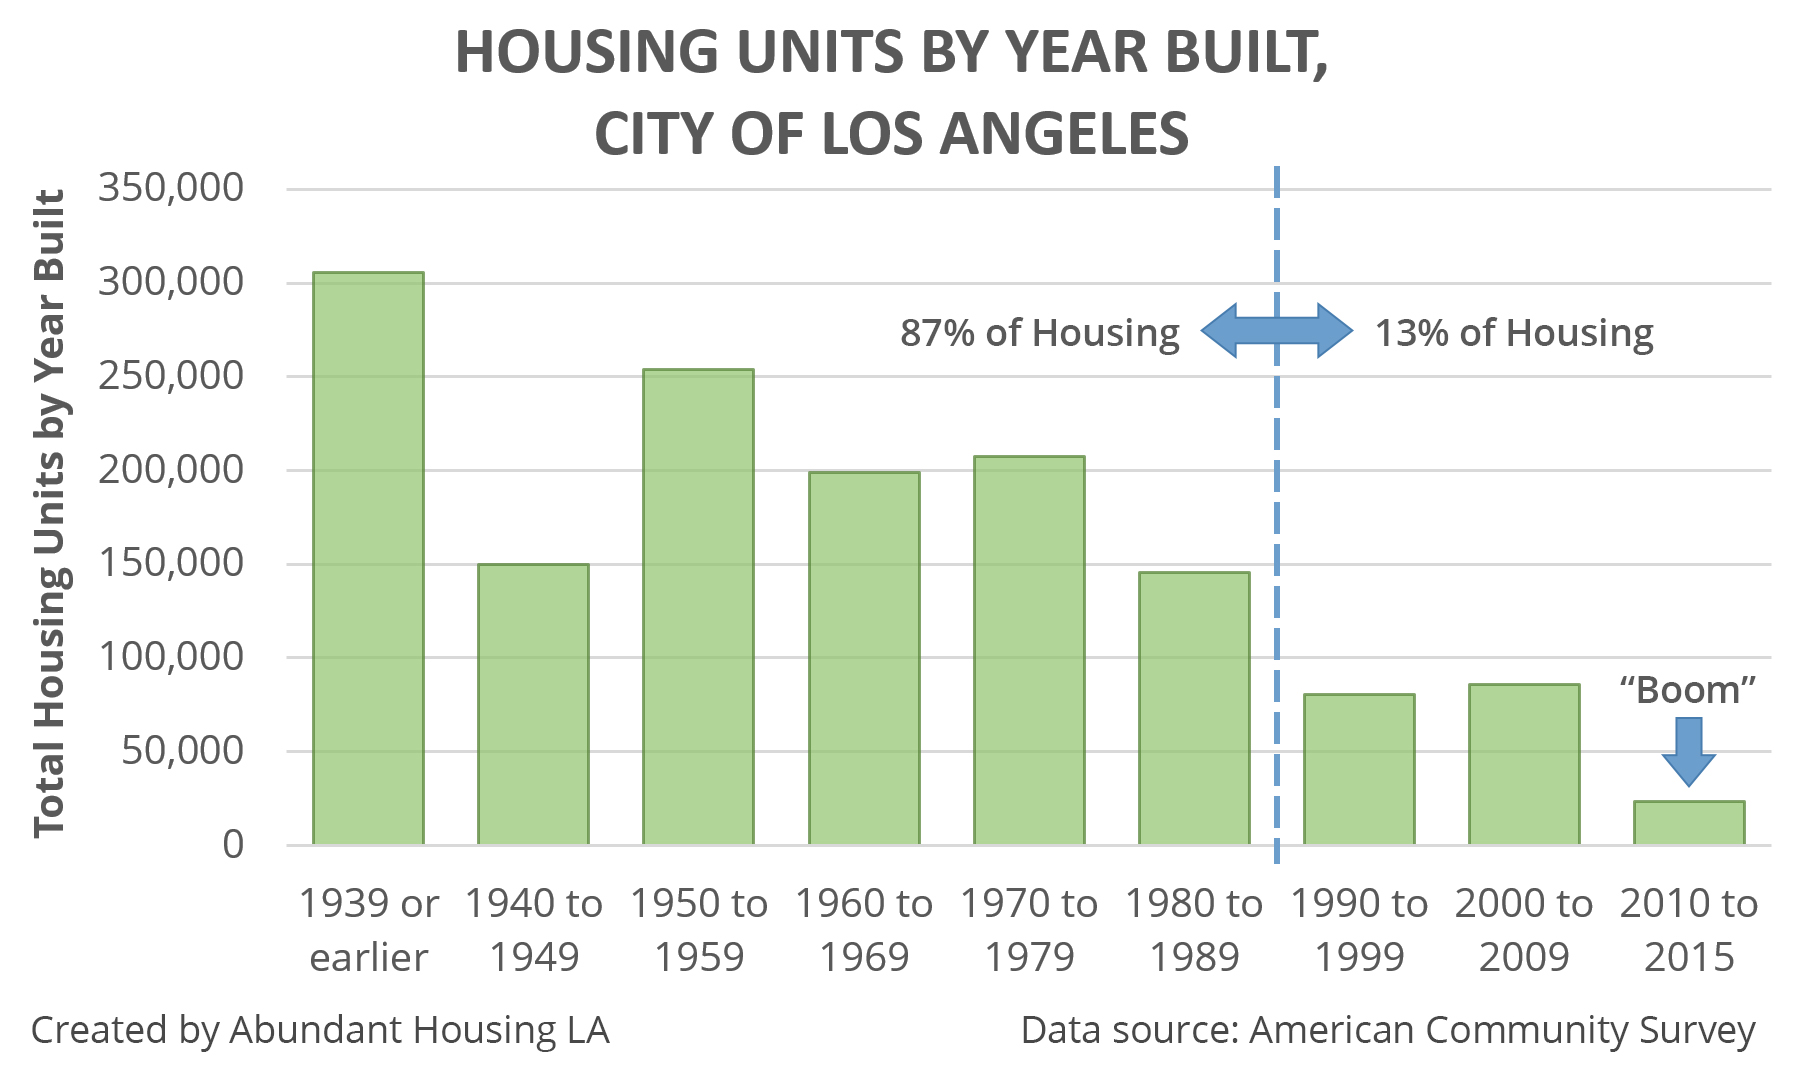 Despite the claims that housing production in LA is booming, we're actually three decades into a historic slump. A few booming neighborhoods is not enough to make up for growing demand across the city.